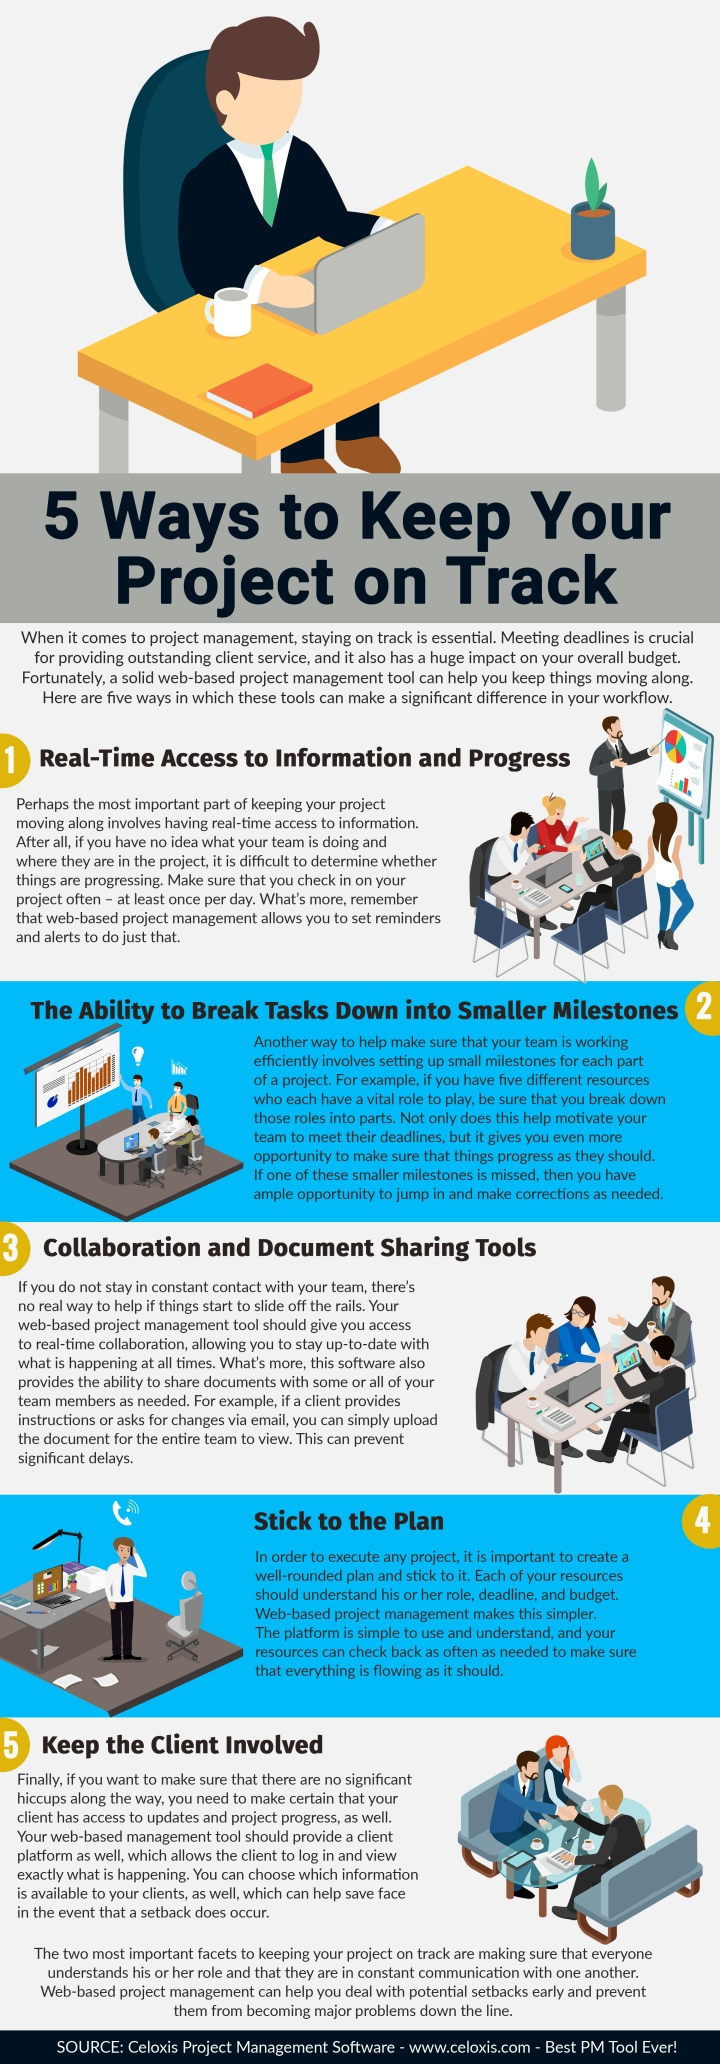 INFOGRAPHIC: 5 Way to Keep Your Project on Track